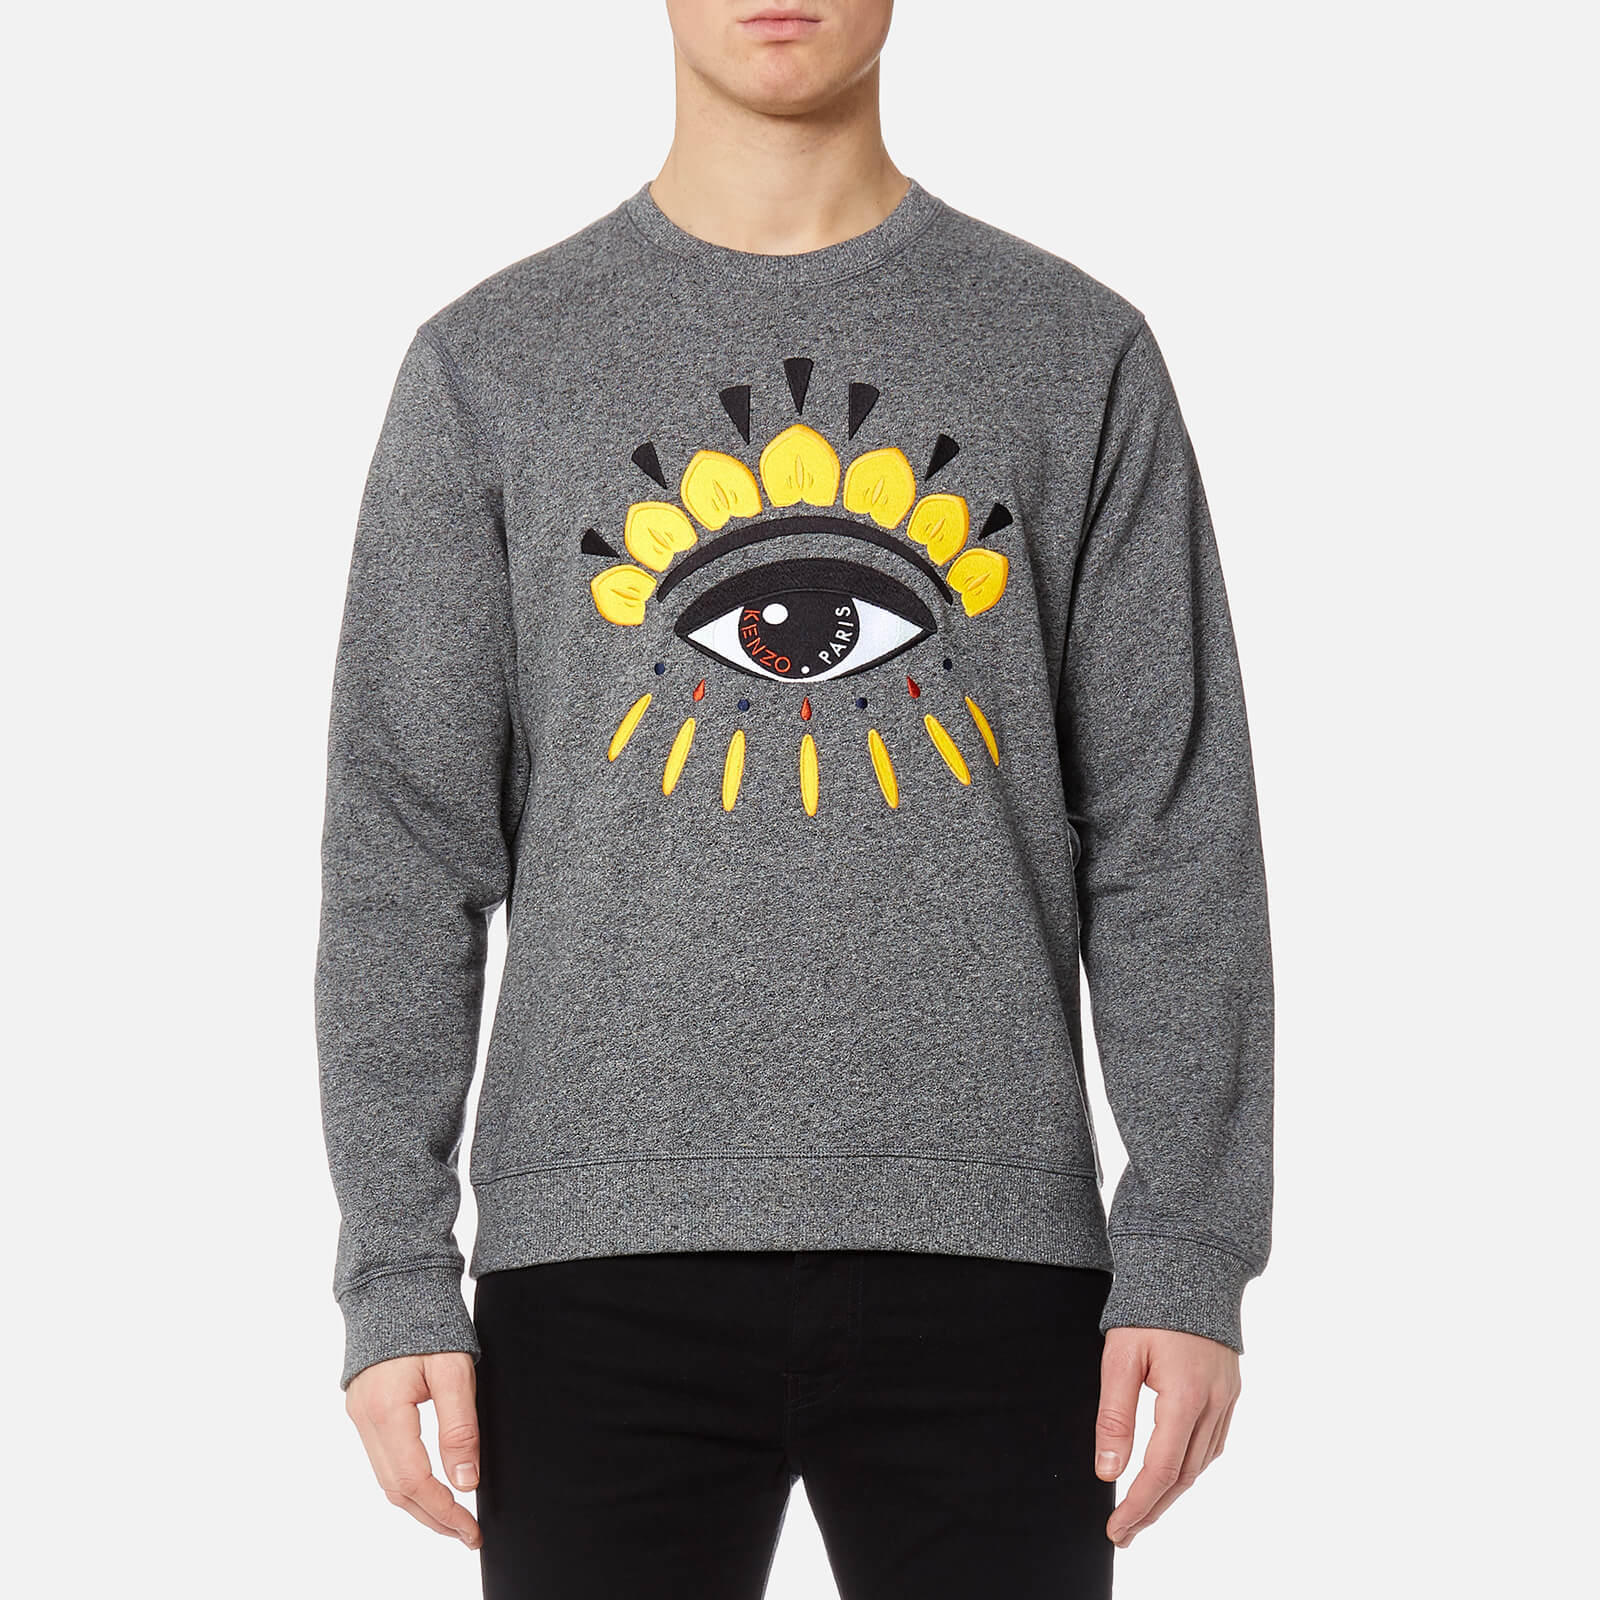 d1c2a0e1175a KENZO Men's Classic Eye Sweatshirt - Anthracite - Free UK Delivery over £50